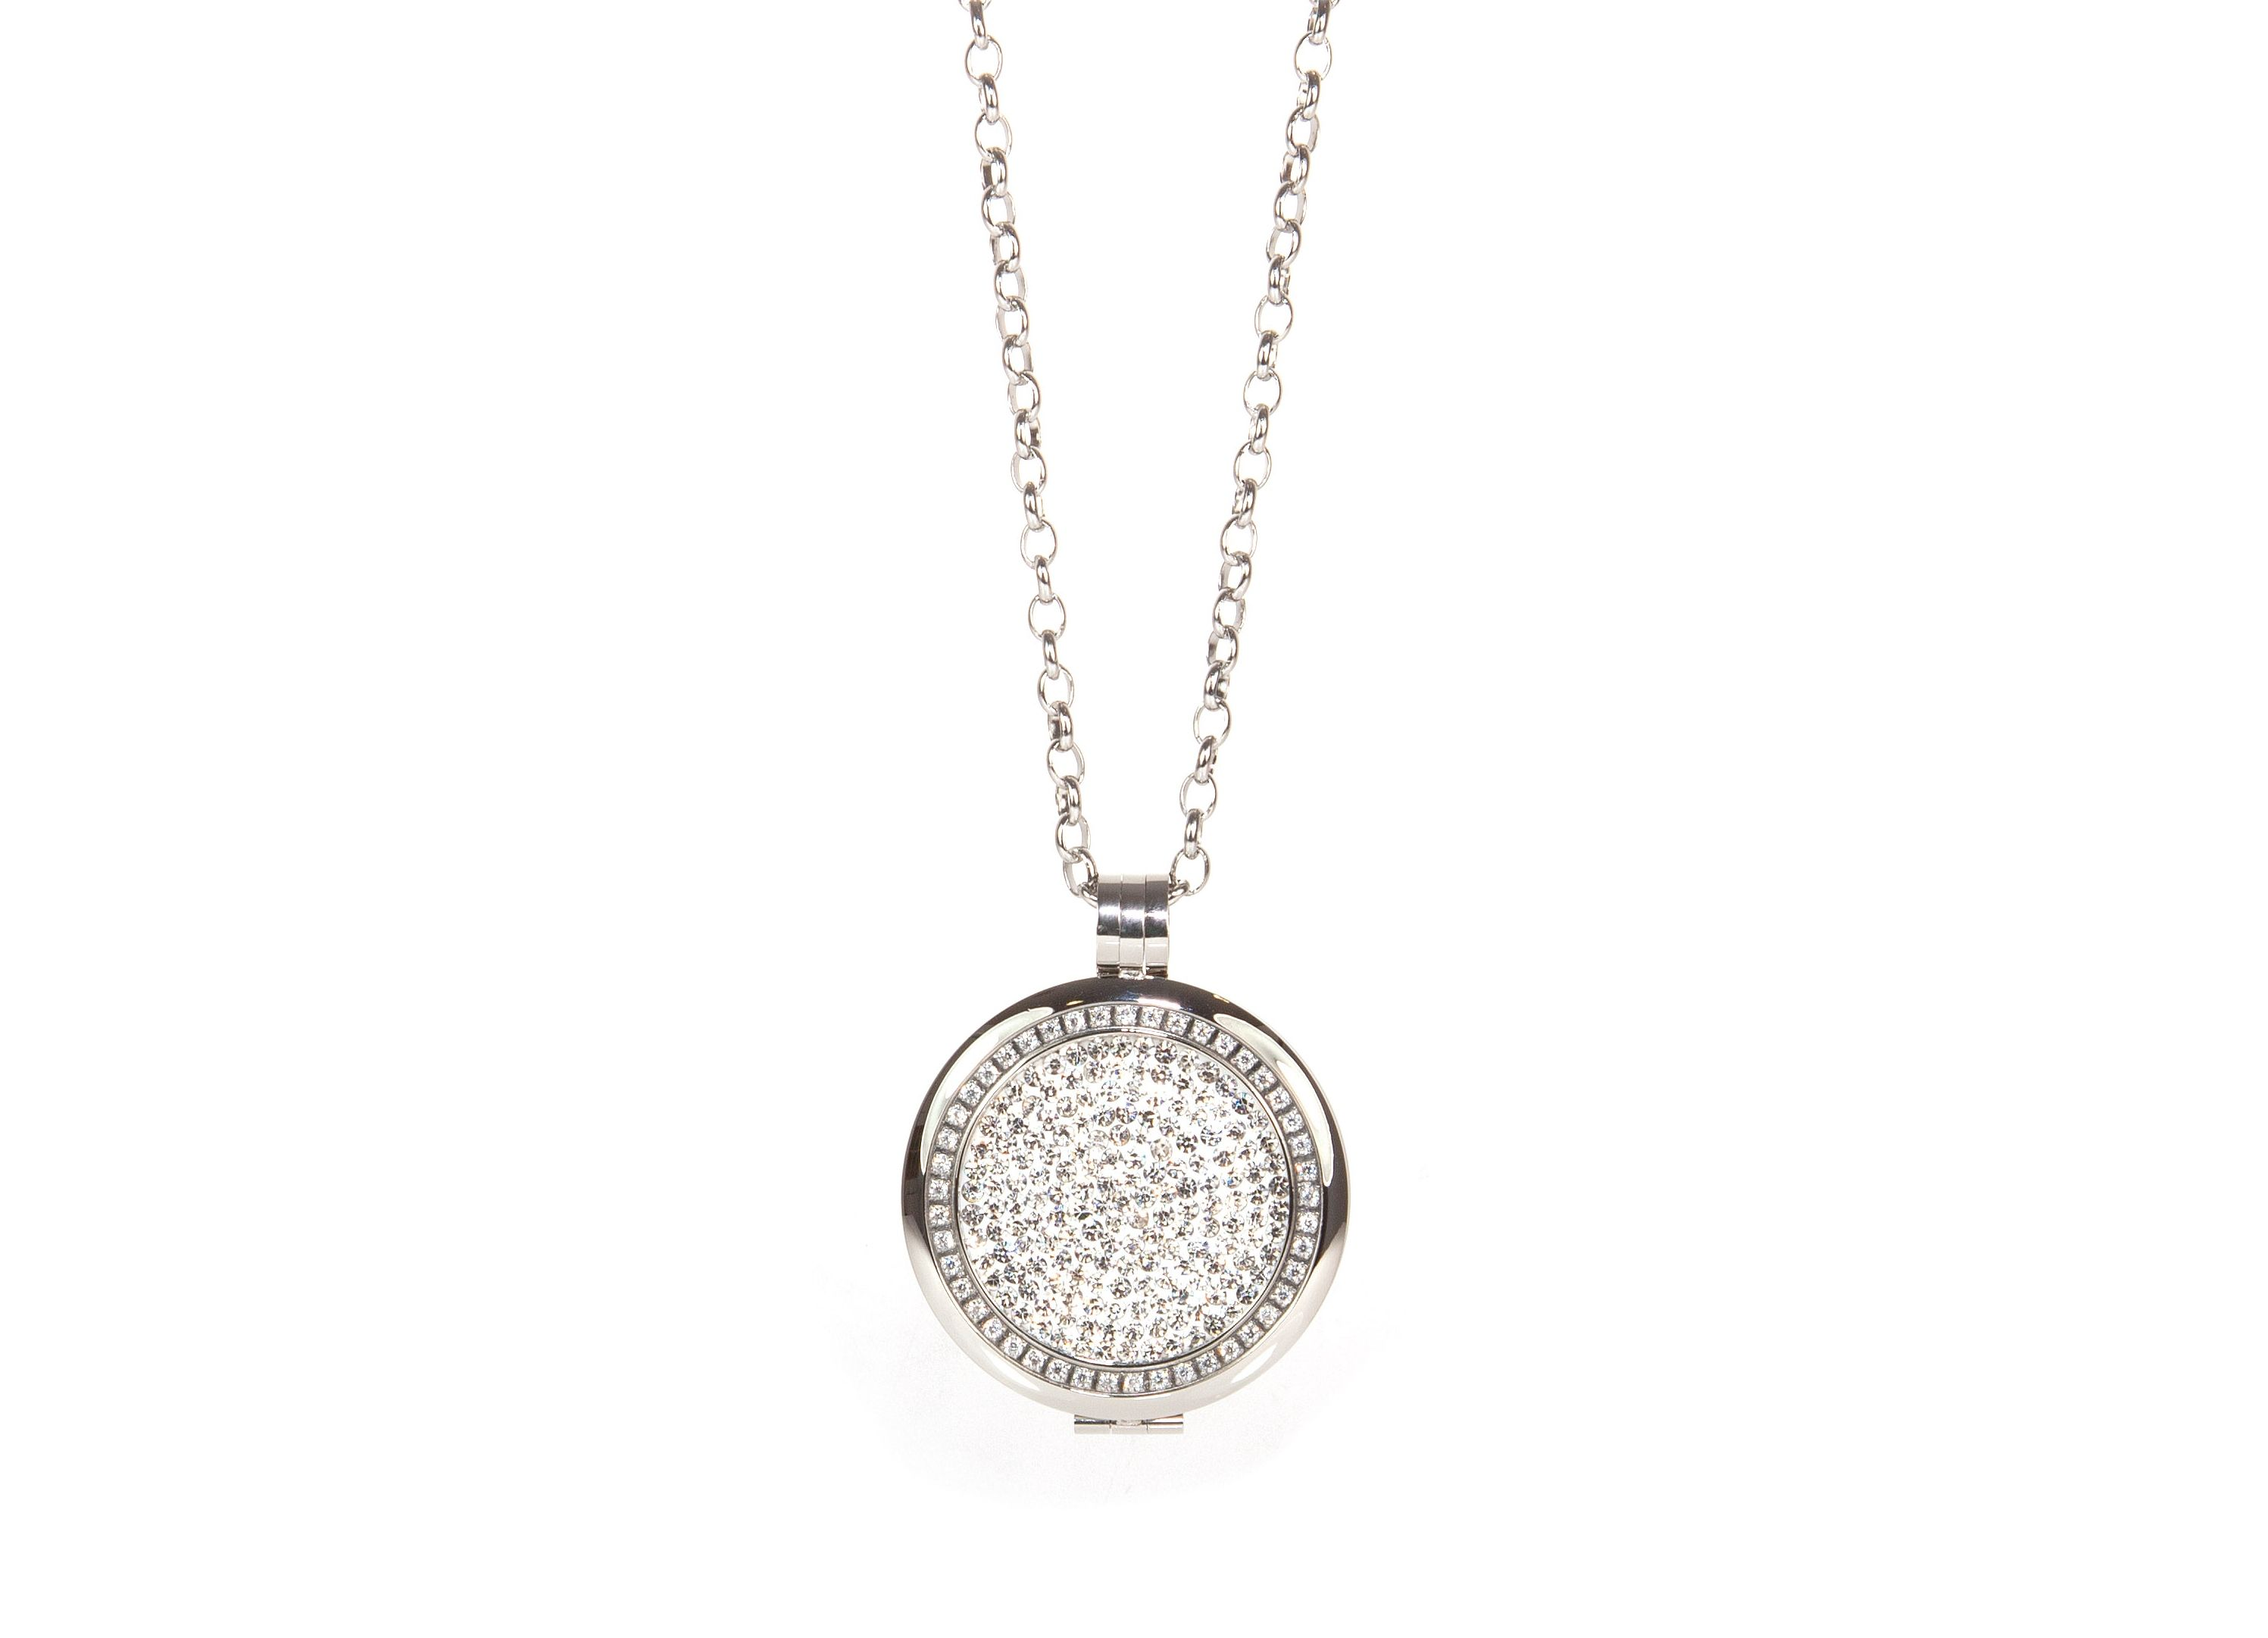 Gorgeous rhodium plated sliver locket with interchangeable center disk!  absolutejewellerycanada.com